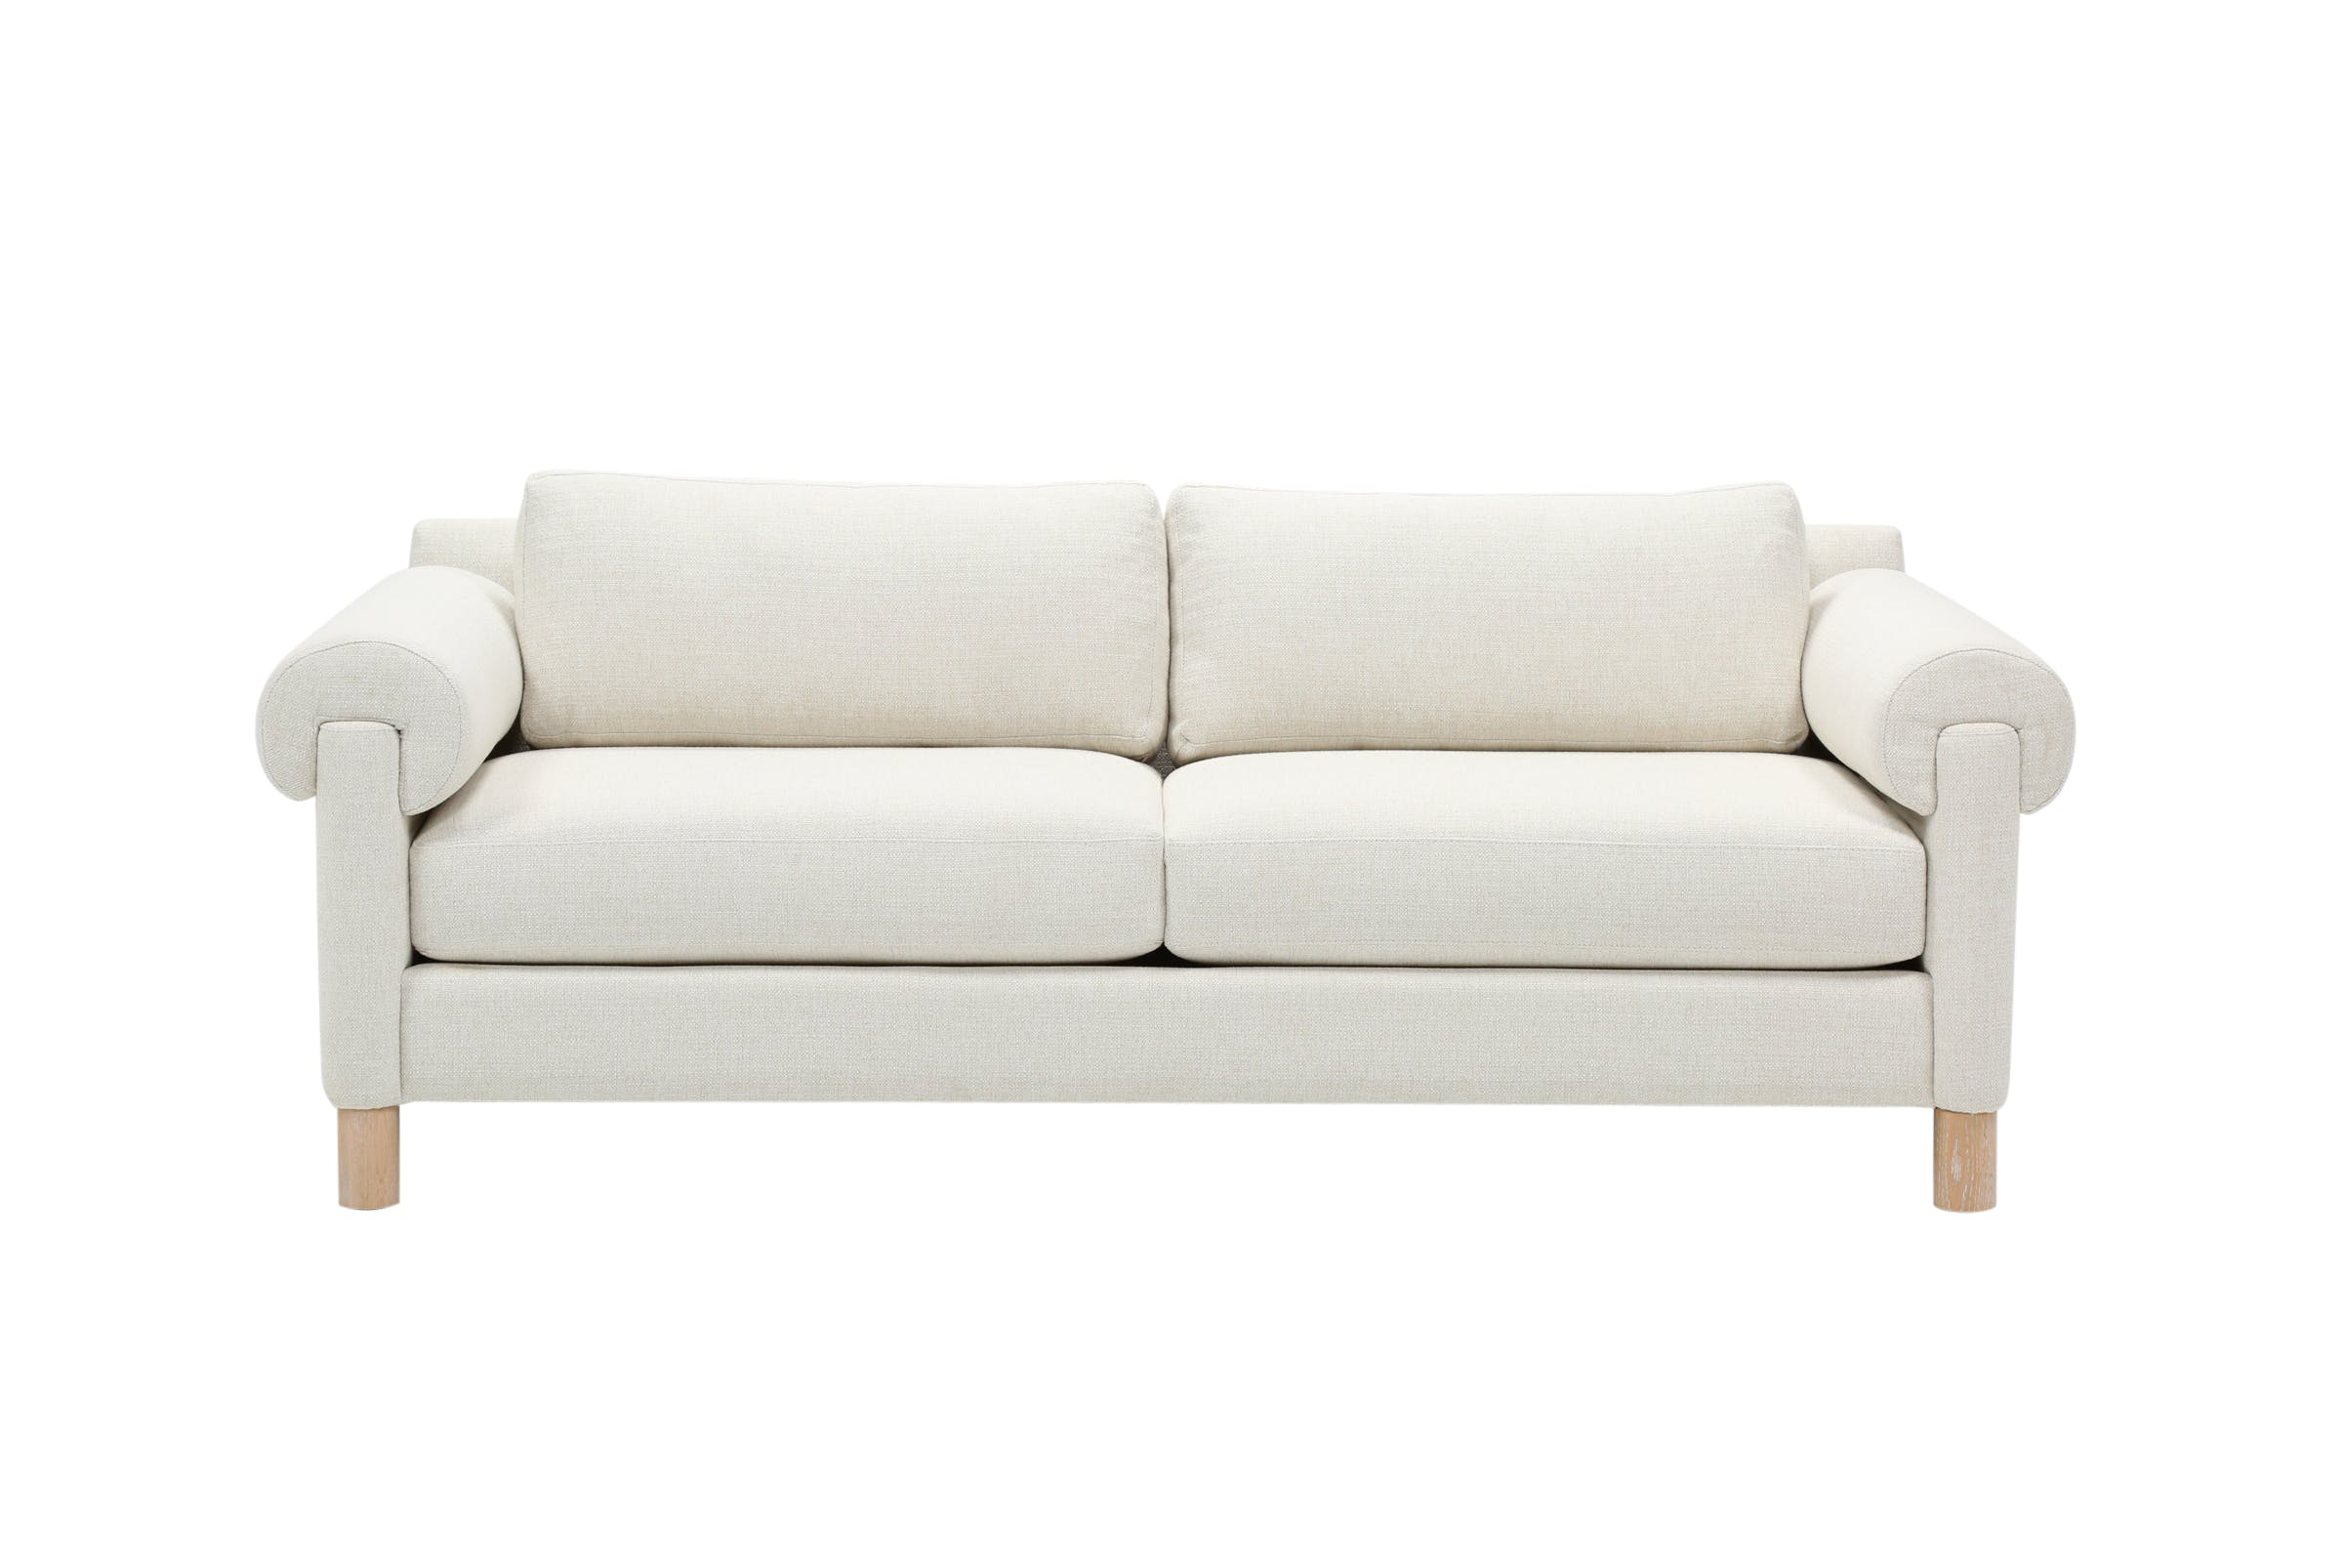 Nate Berkus Just Launched A Home Collection With Hubby Jeremiah Regarding Liv Arm Sofa Chairs By Nate Berkus And Jeremiah Brent (View 11 of 20)